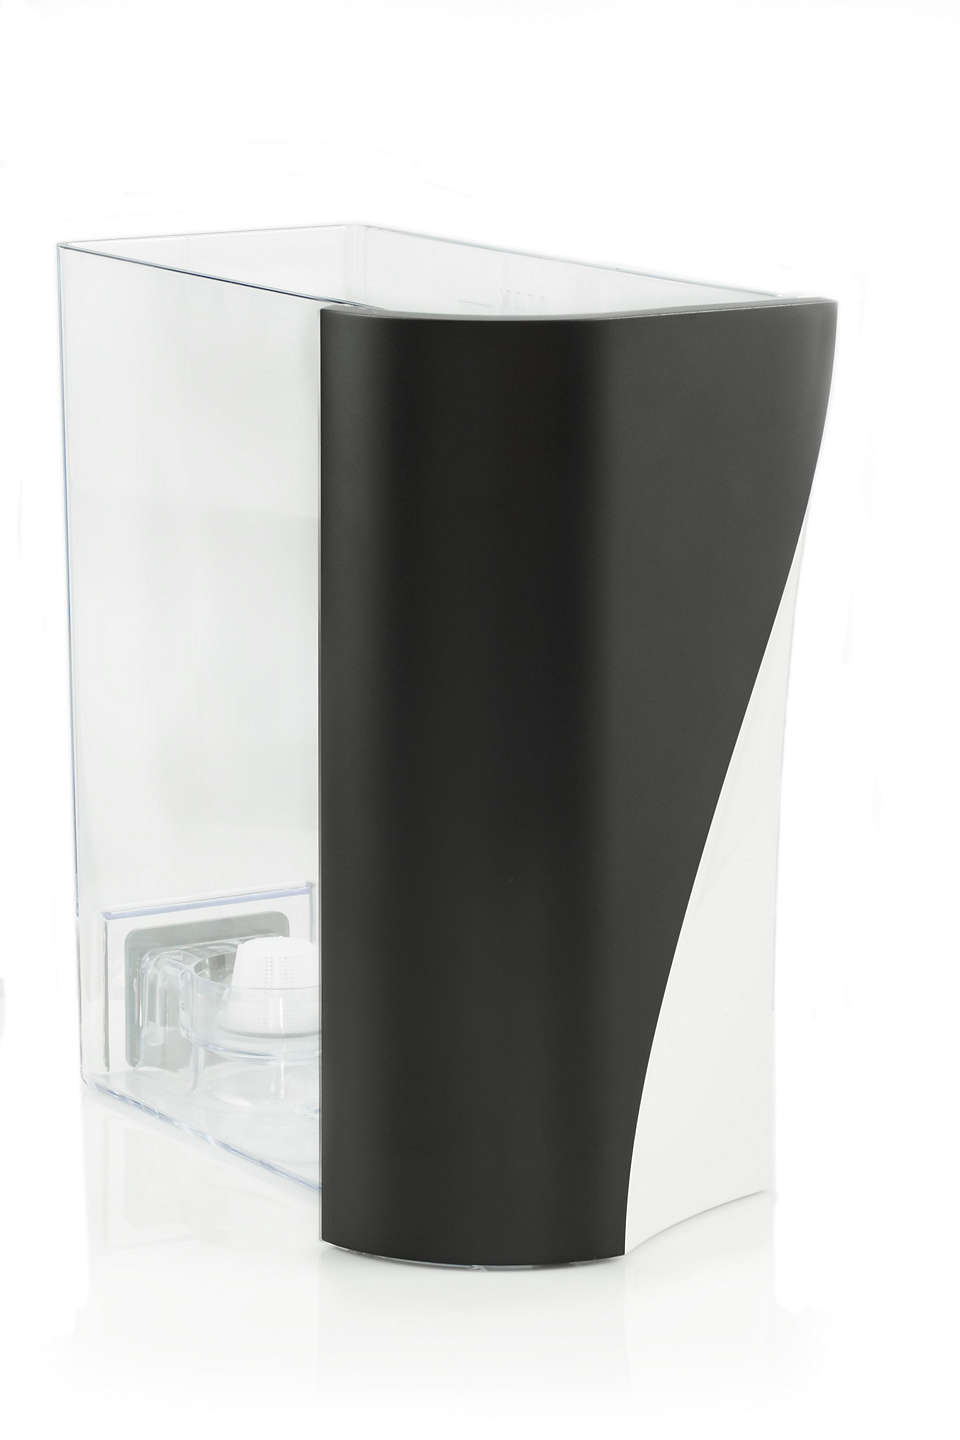 Water tank for the SENSEO® SARISTA coffee maker